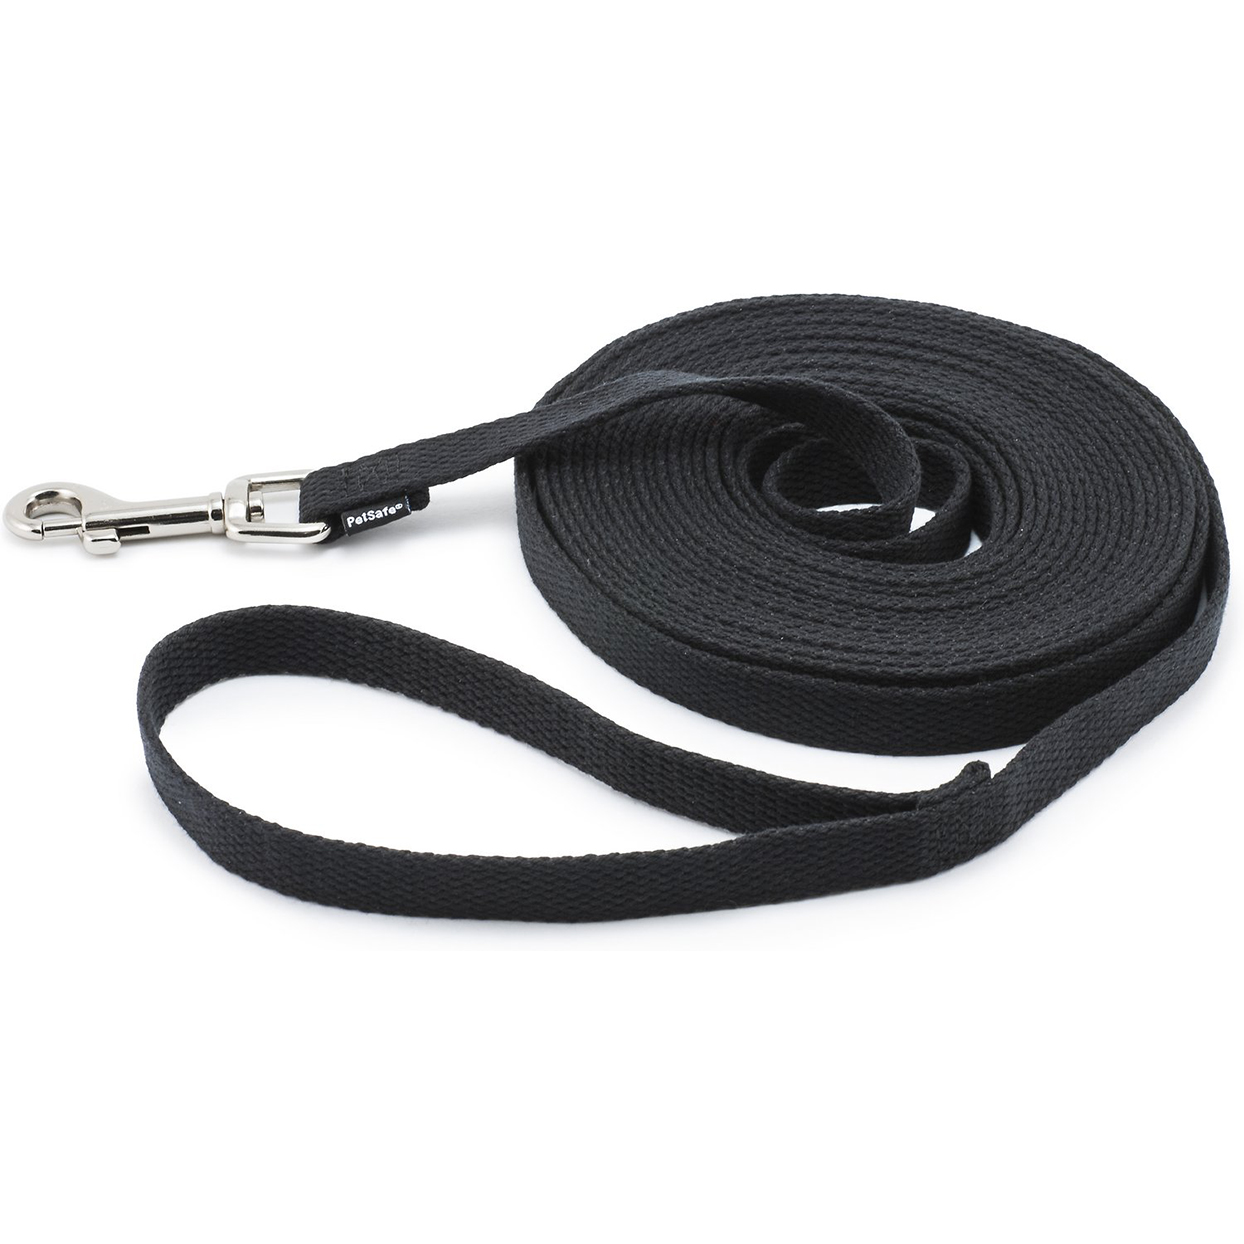 petsafe cotton dog training lead